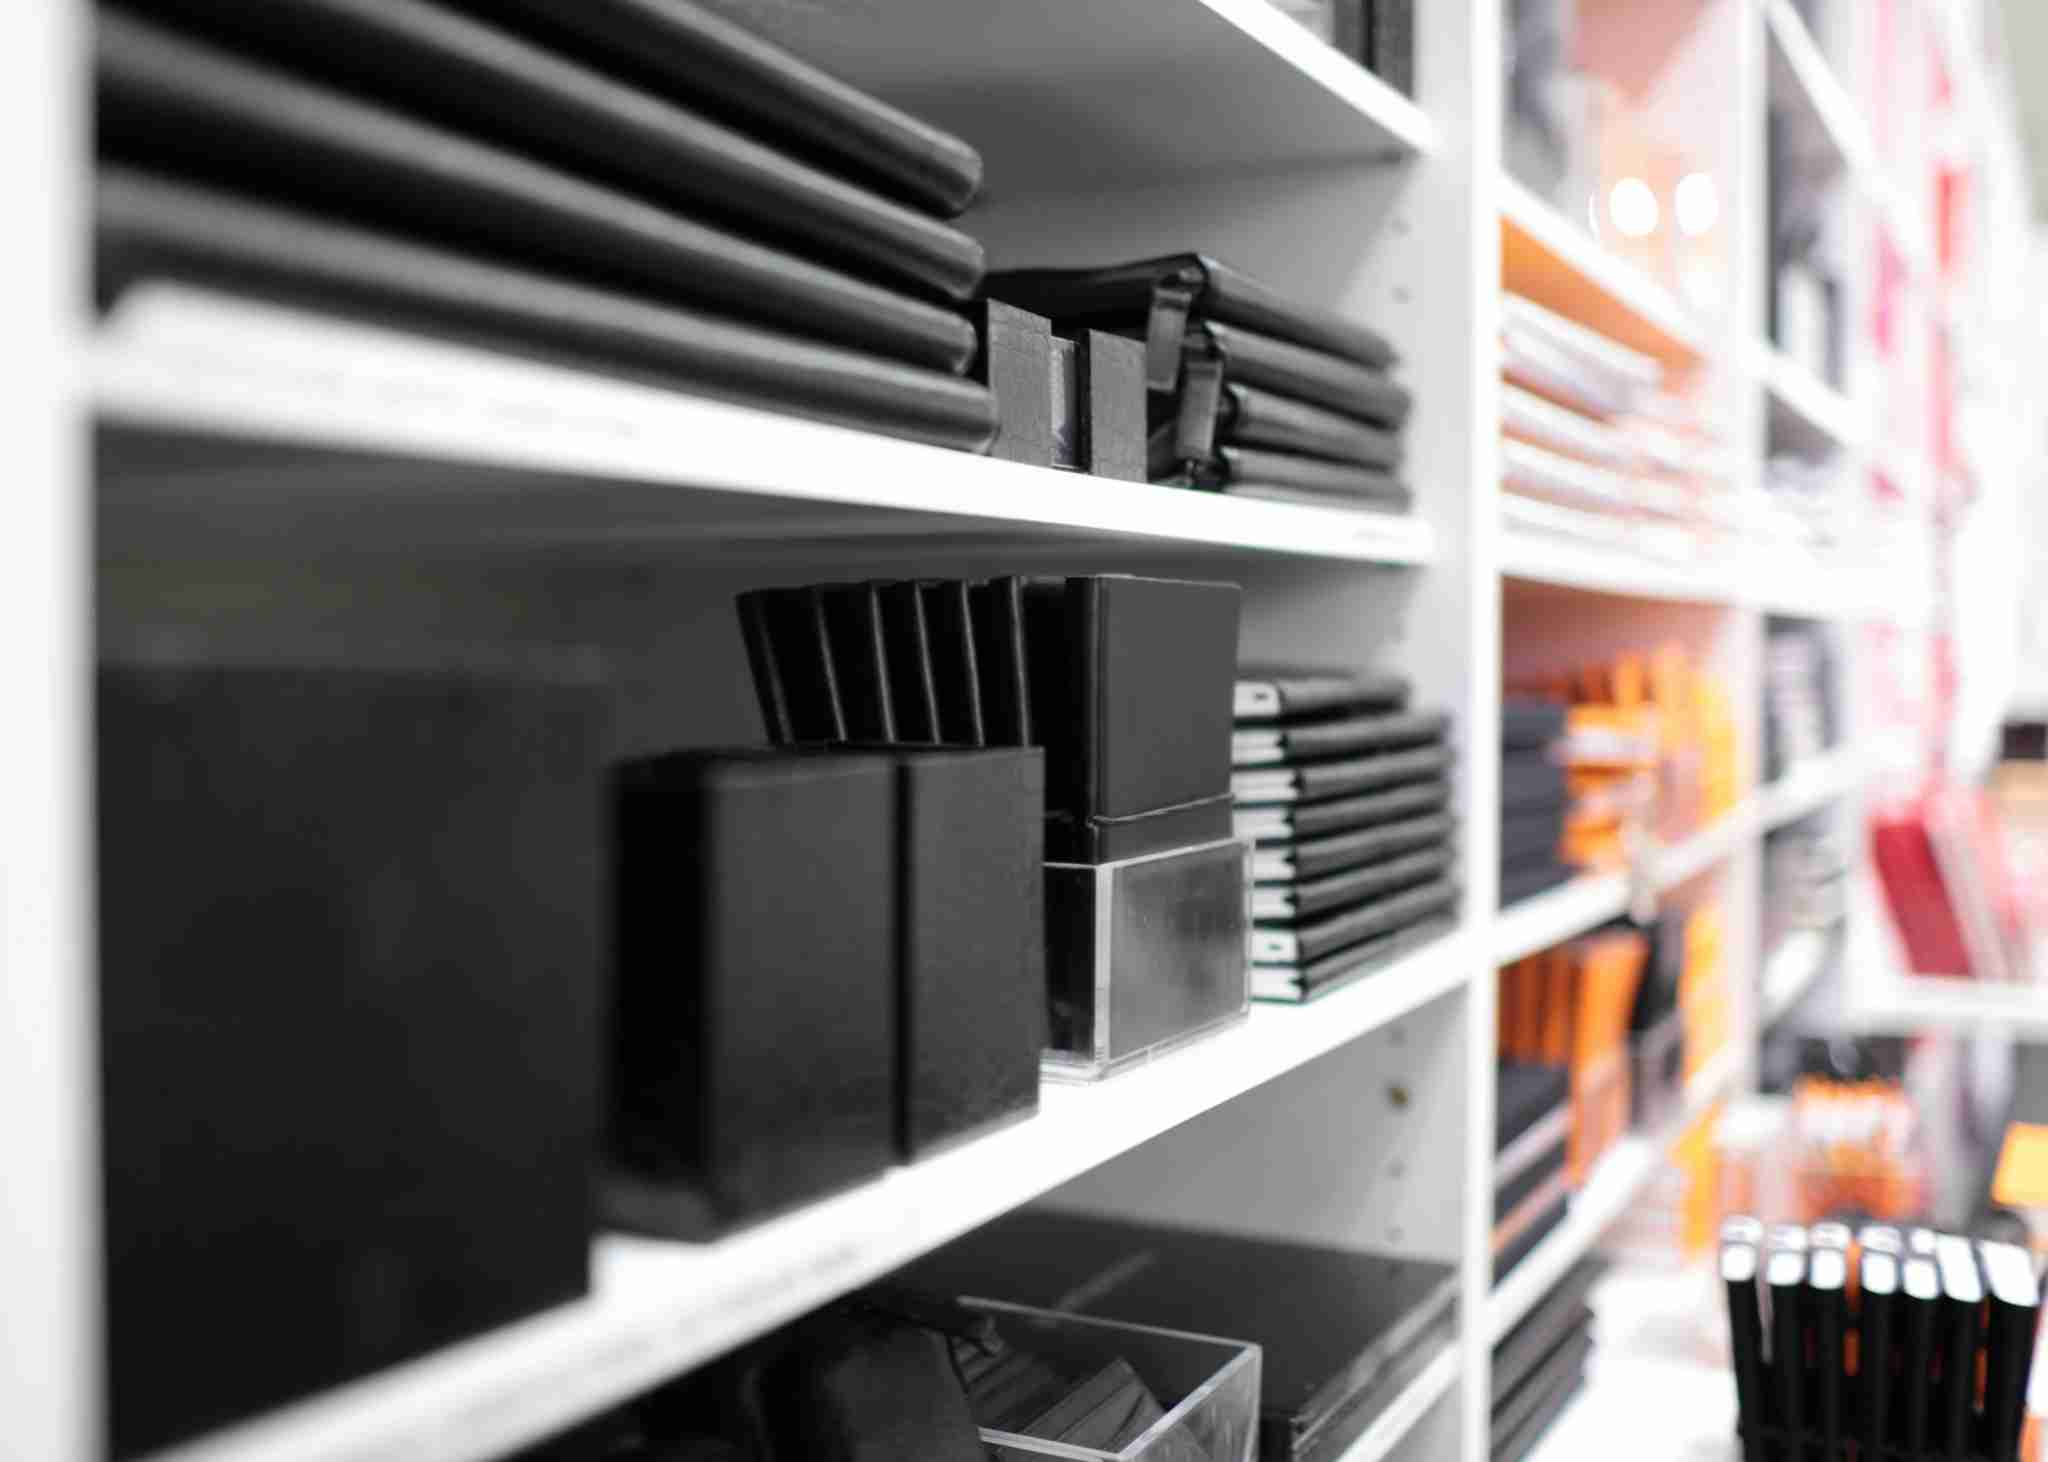 Shelves with office supplies in a shop. (Photo by -lvinst- via Getty Images)